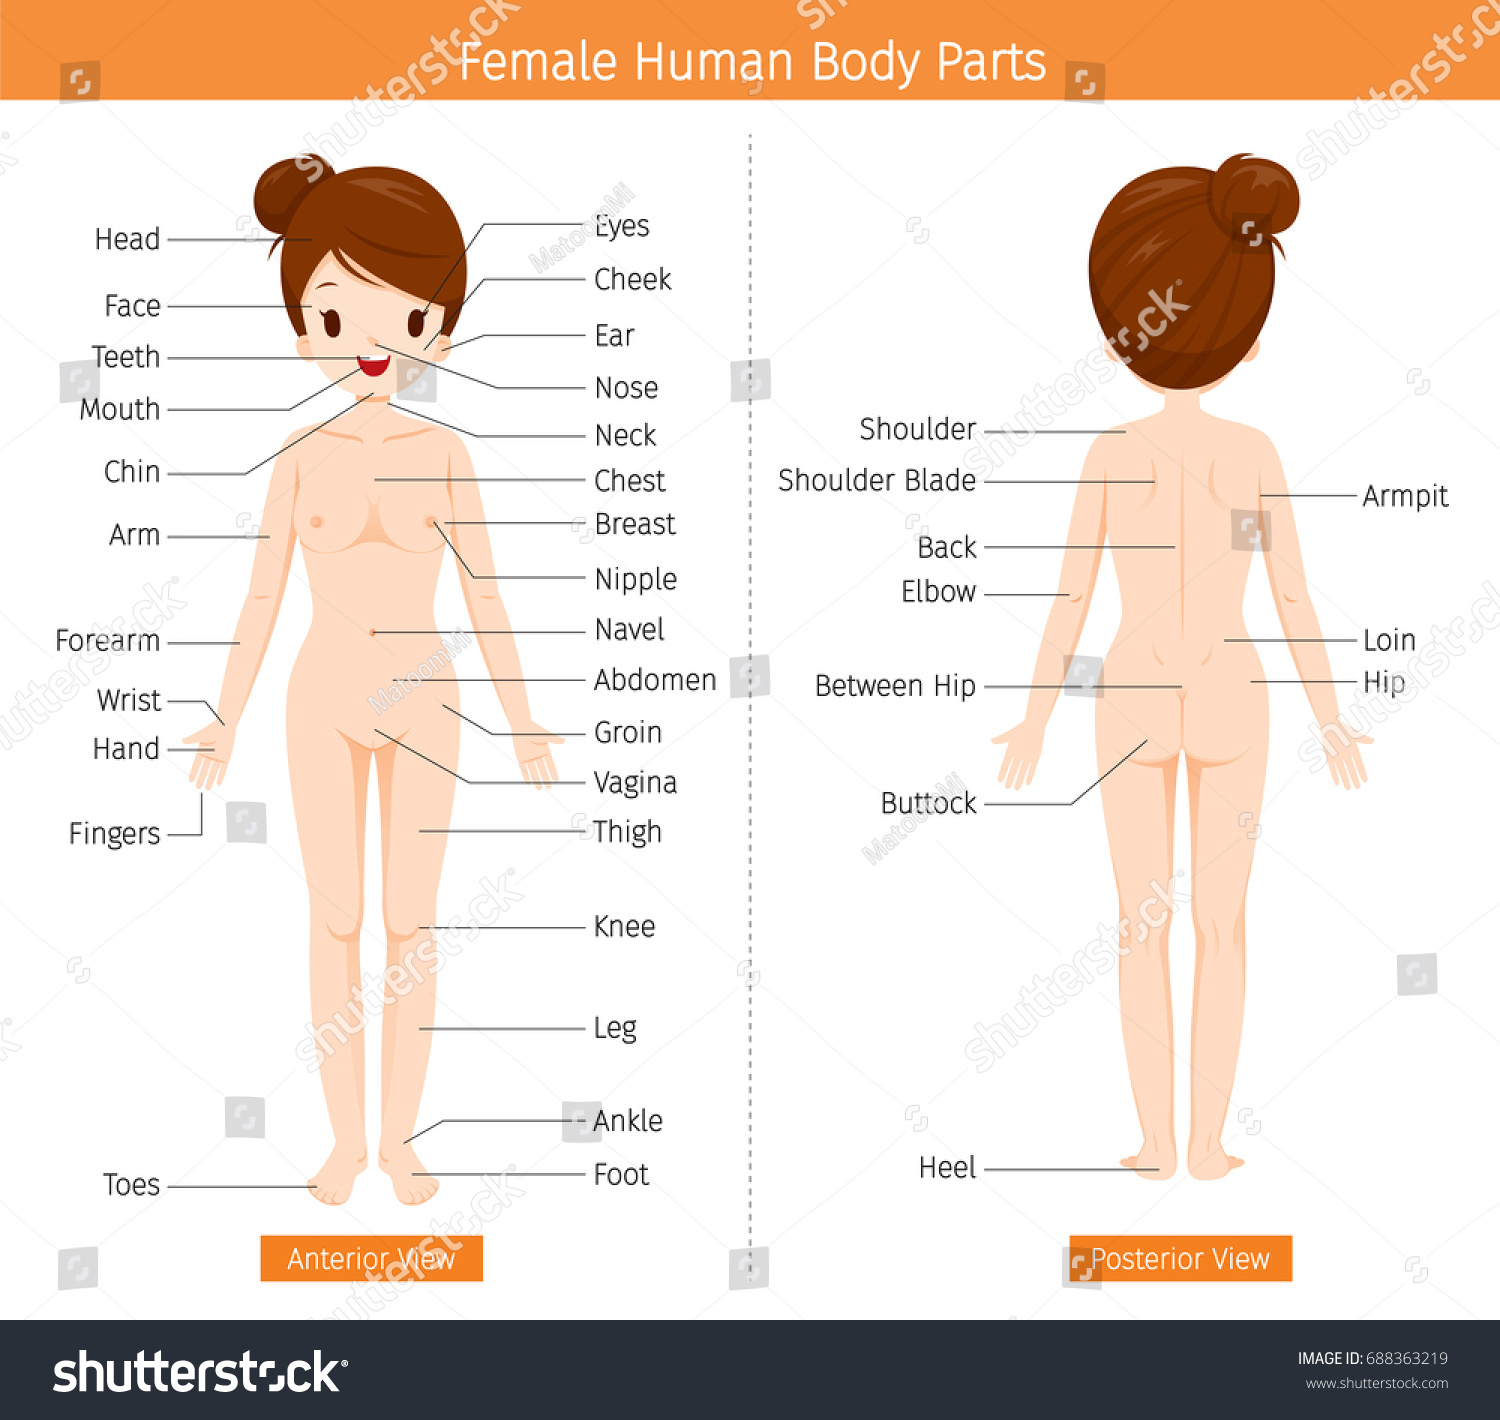 Female Human Anatomy External Organs Body Stock Vector (Royalty Free ...